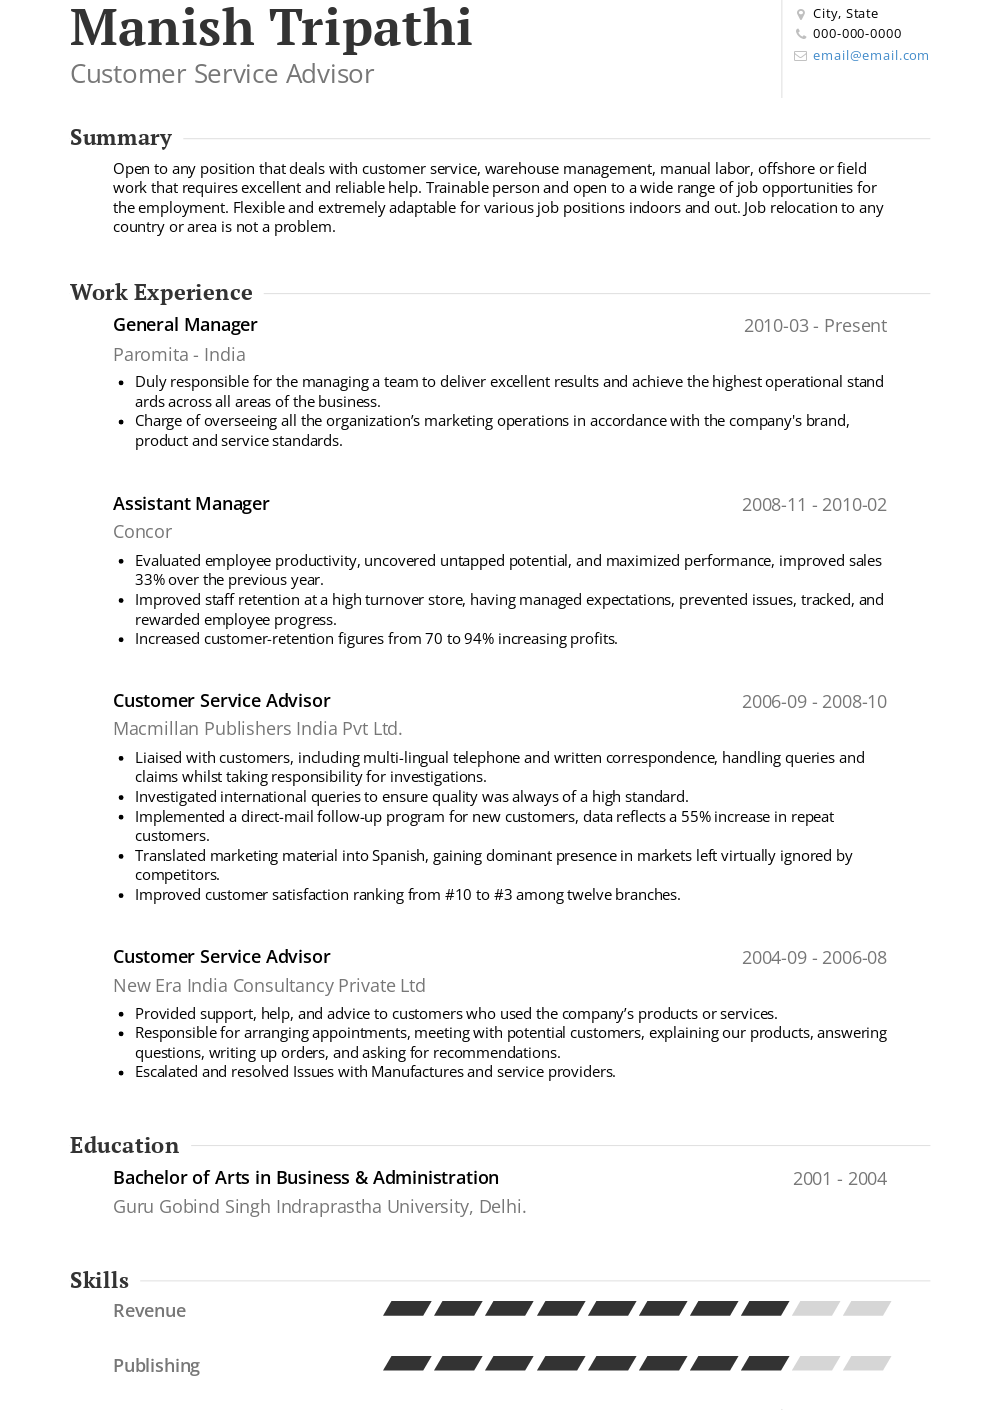 Customer Service Resume Samples Templates Visualcv